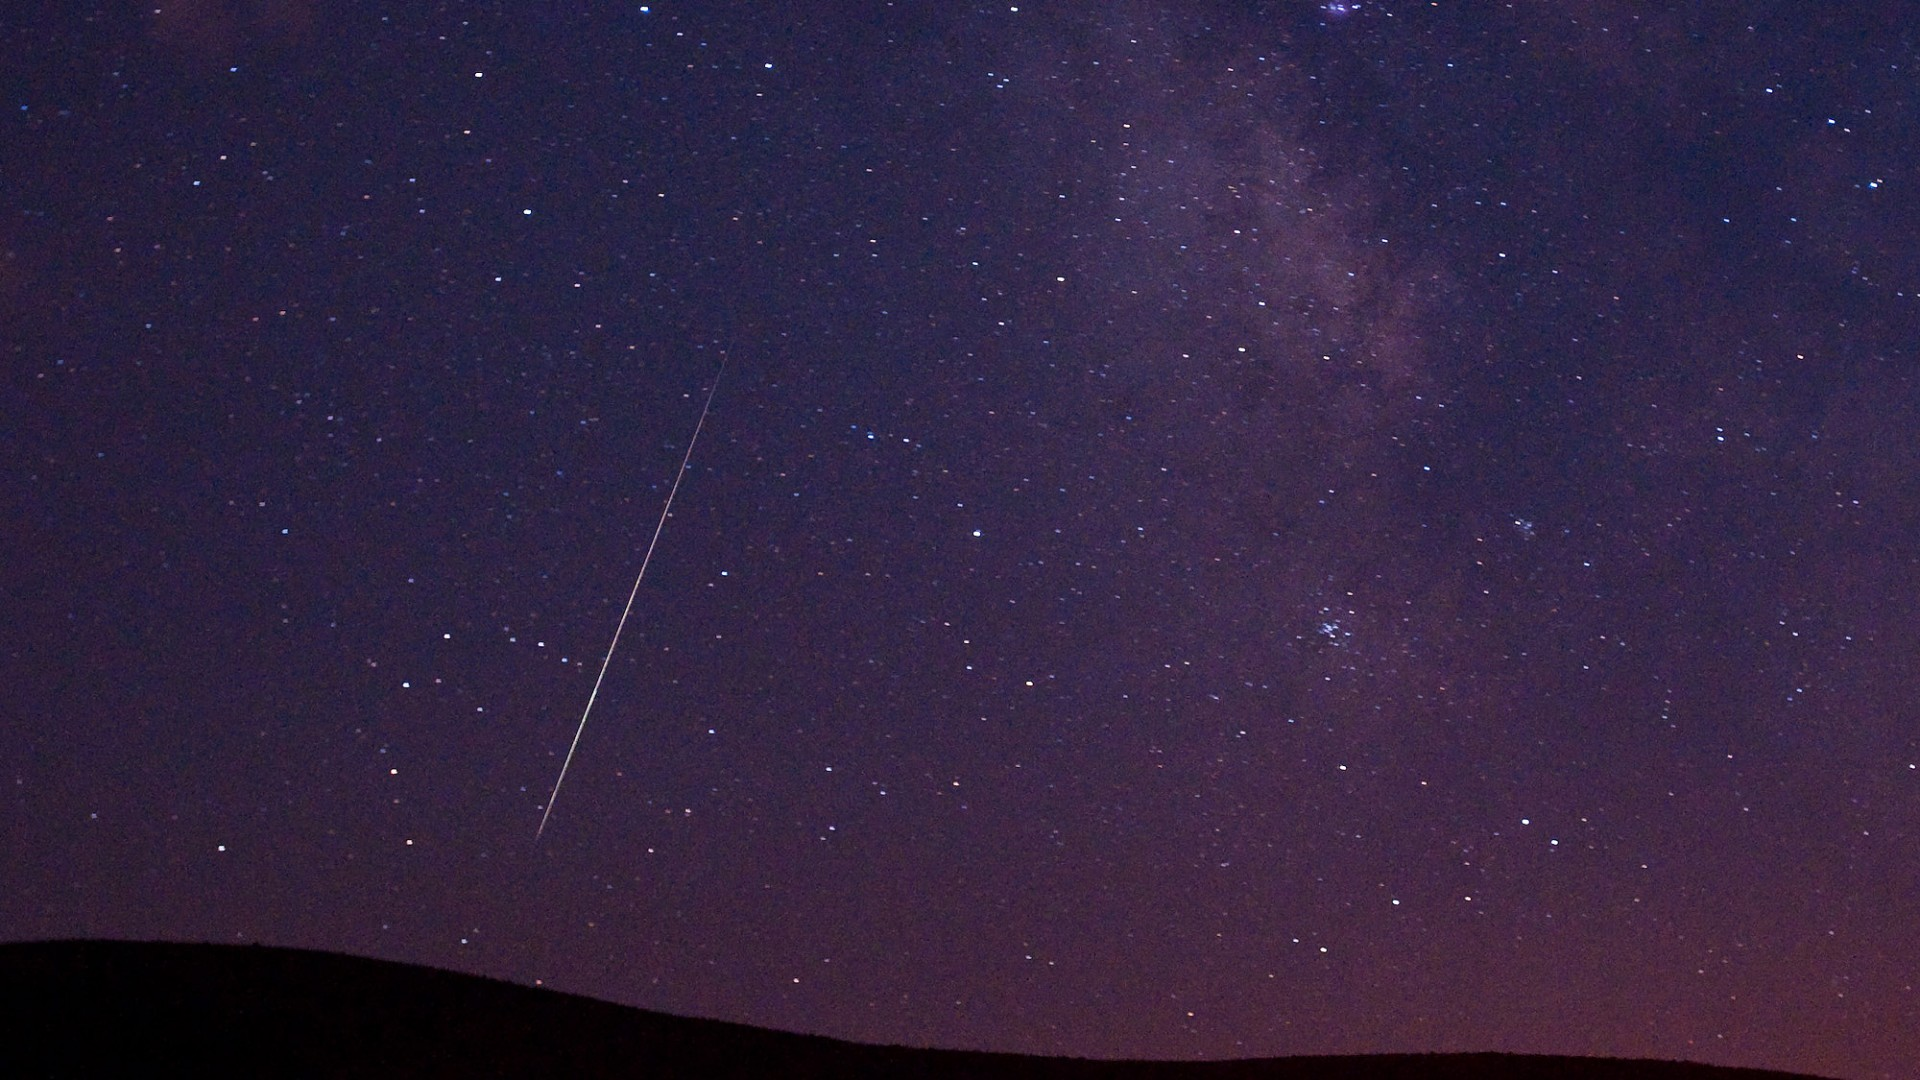 How To Make Video Wallpaper Iphone X Perseids Meteor Shower Hd Wallpapers